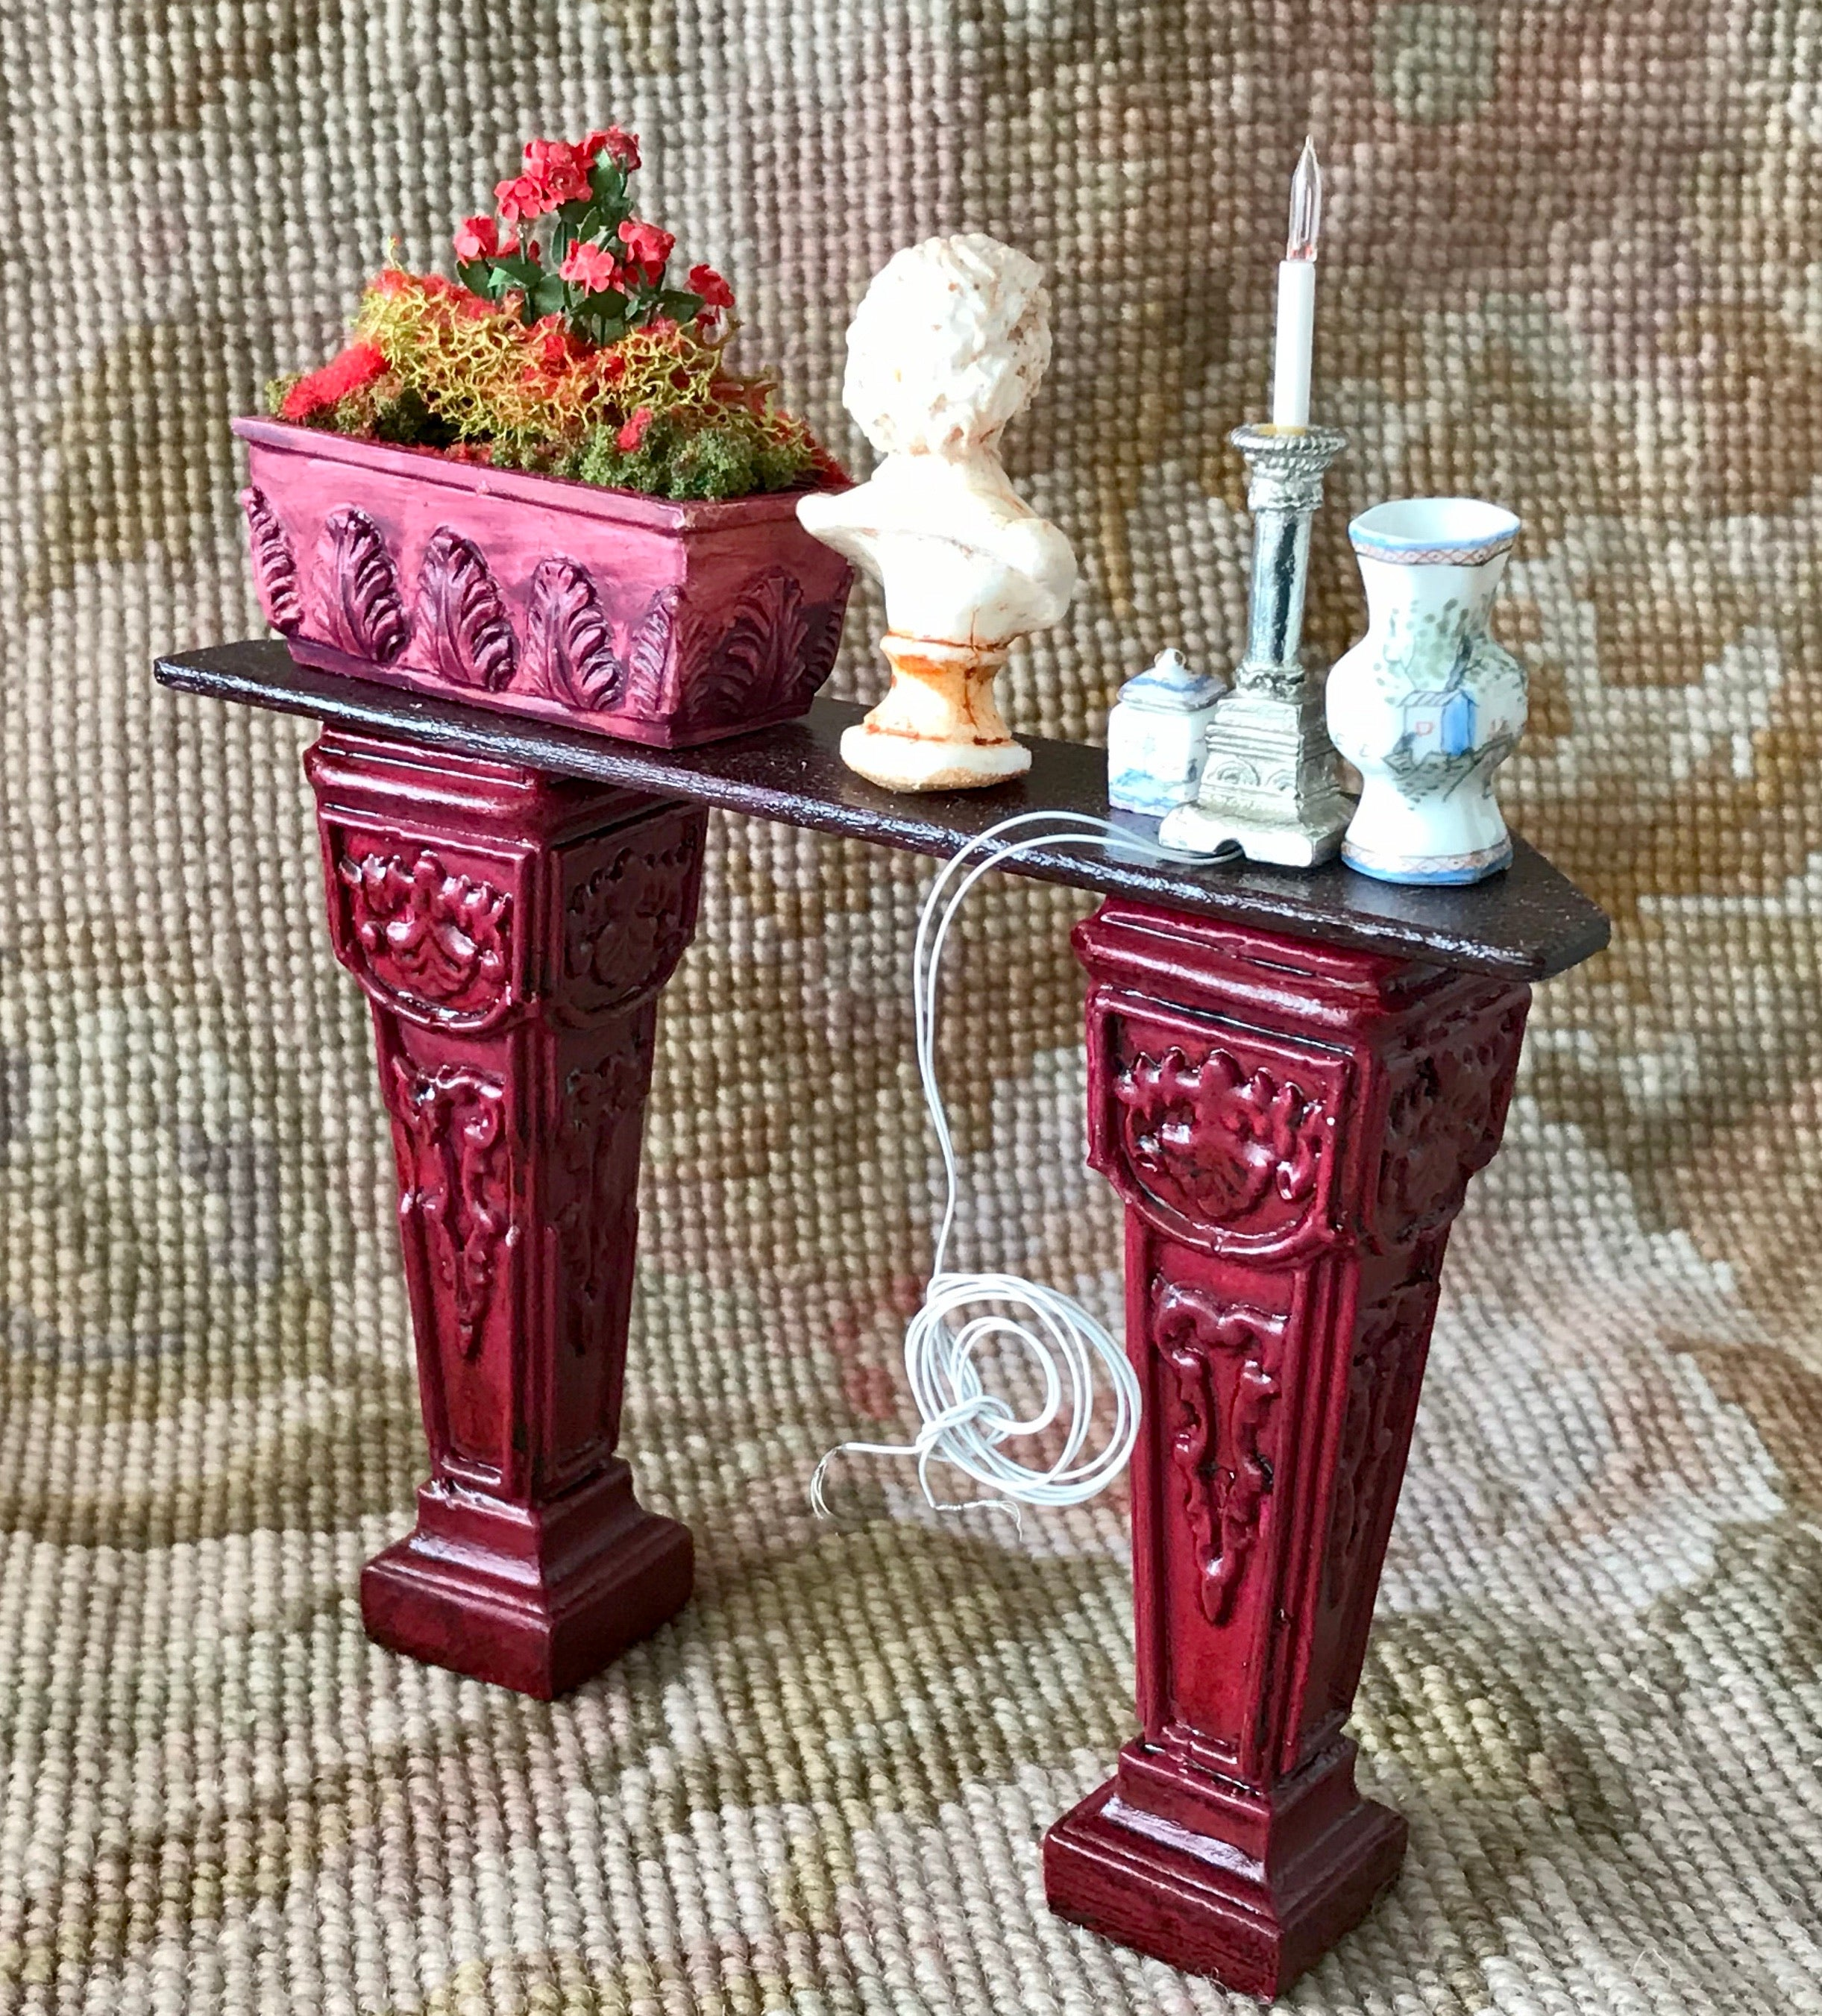 Table Stand Pedestal Dressed with working candle, plant, Bespaq vase & container ,bust 1:12 Dollhouse Miniature